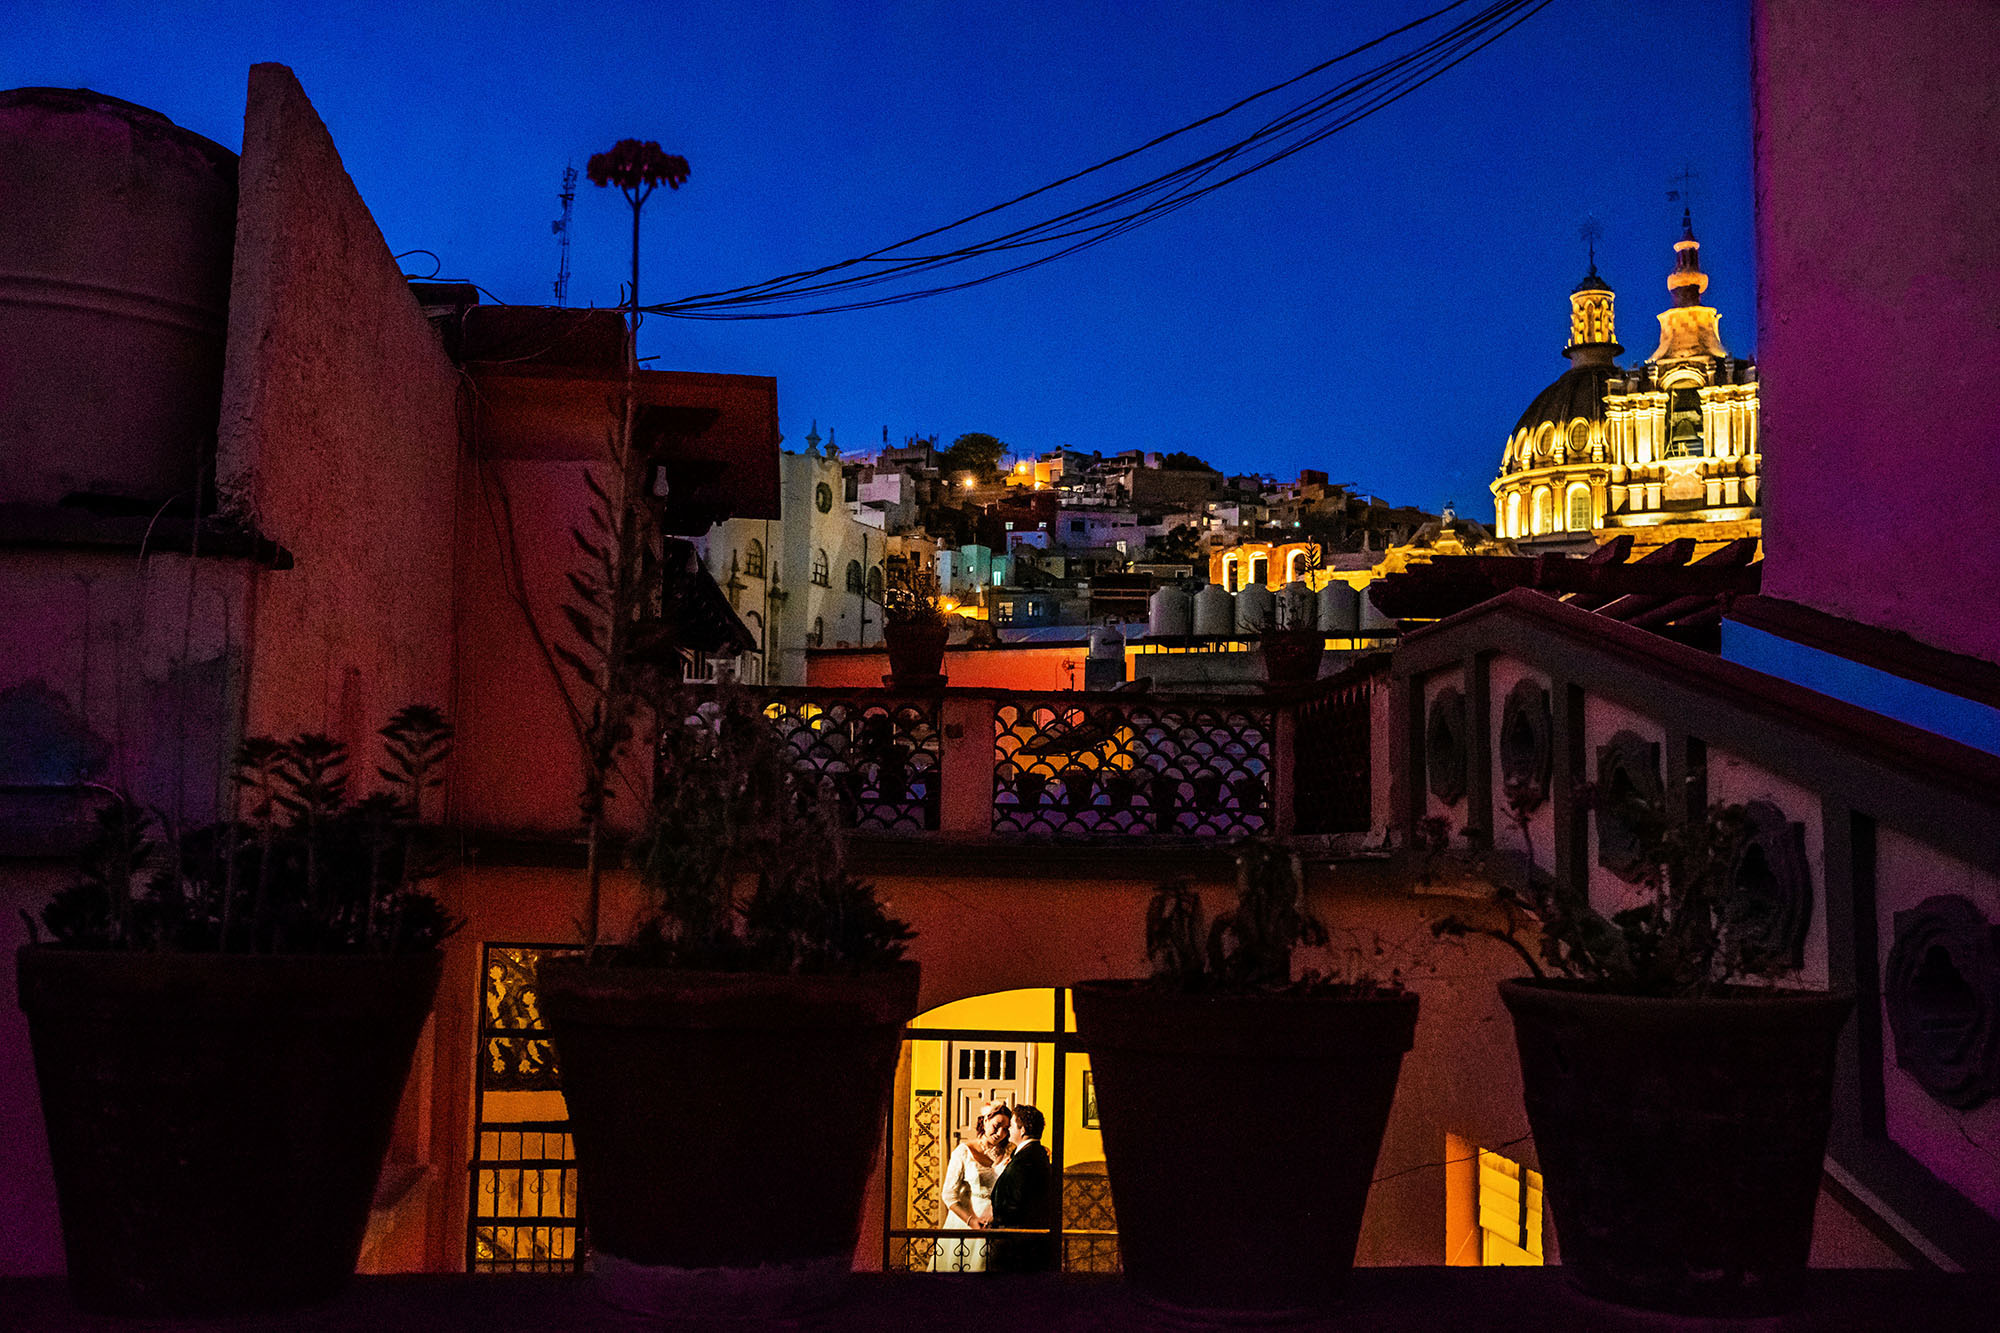 Maria_Francisco_Guanajuato_Mexico_Destination_Wedding_Shaunte_Dittmar_Photography_01.jpg